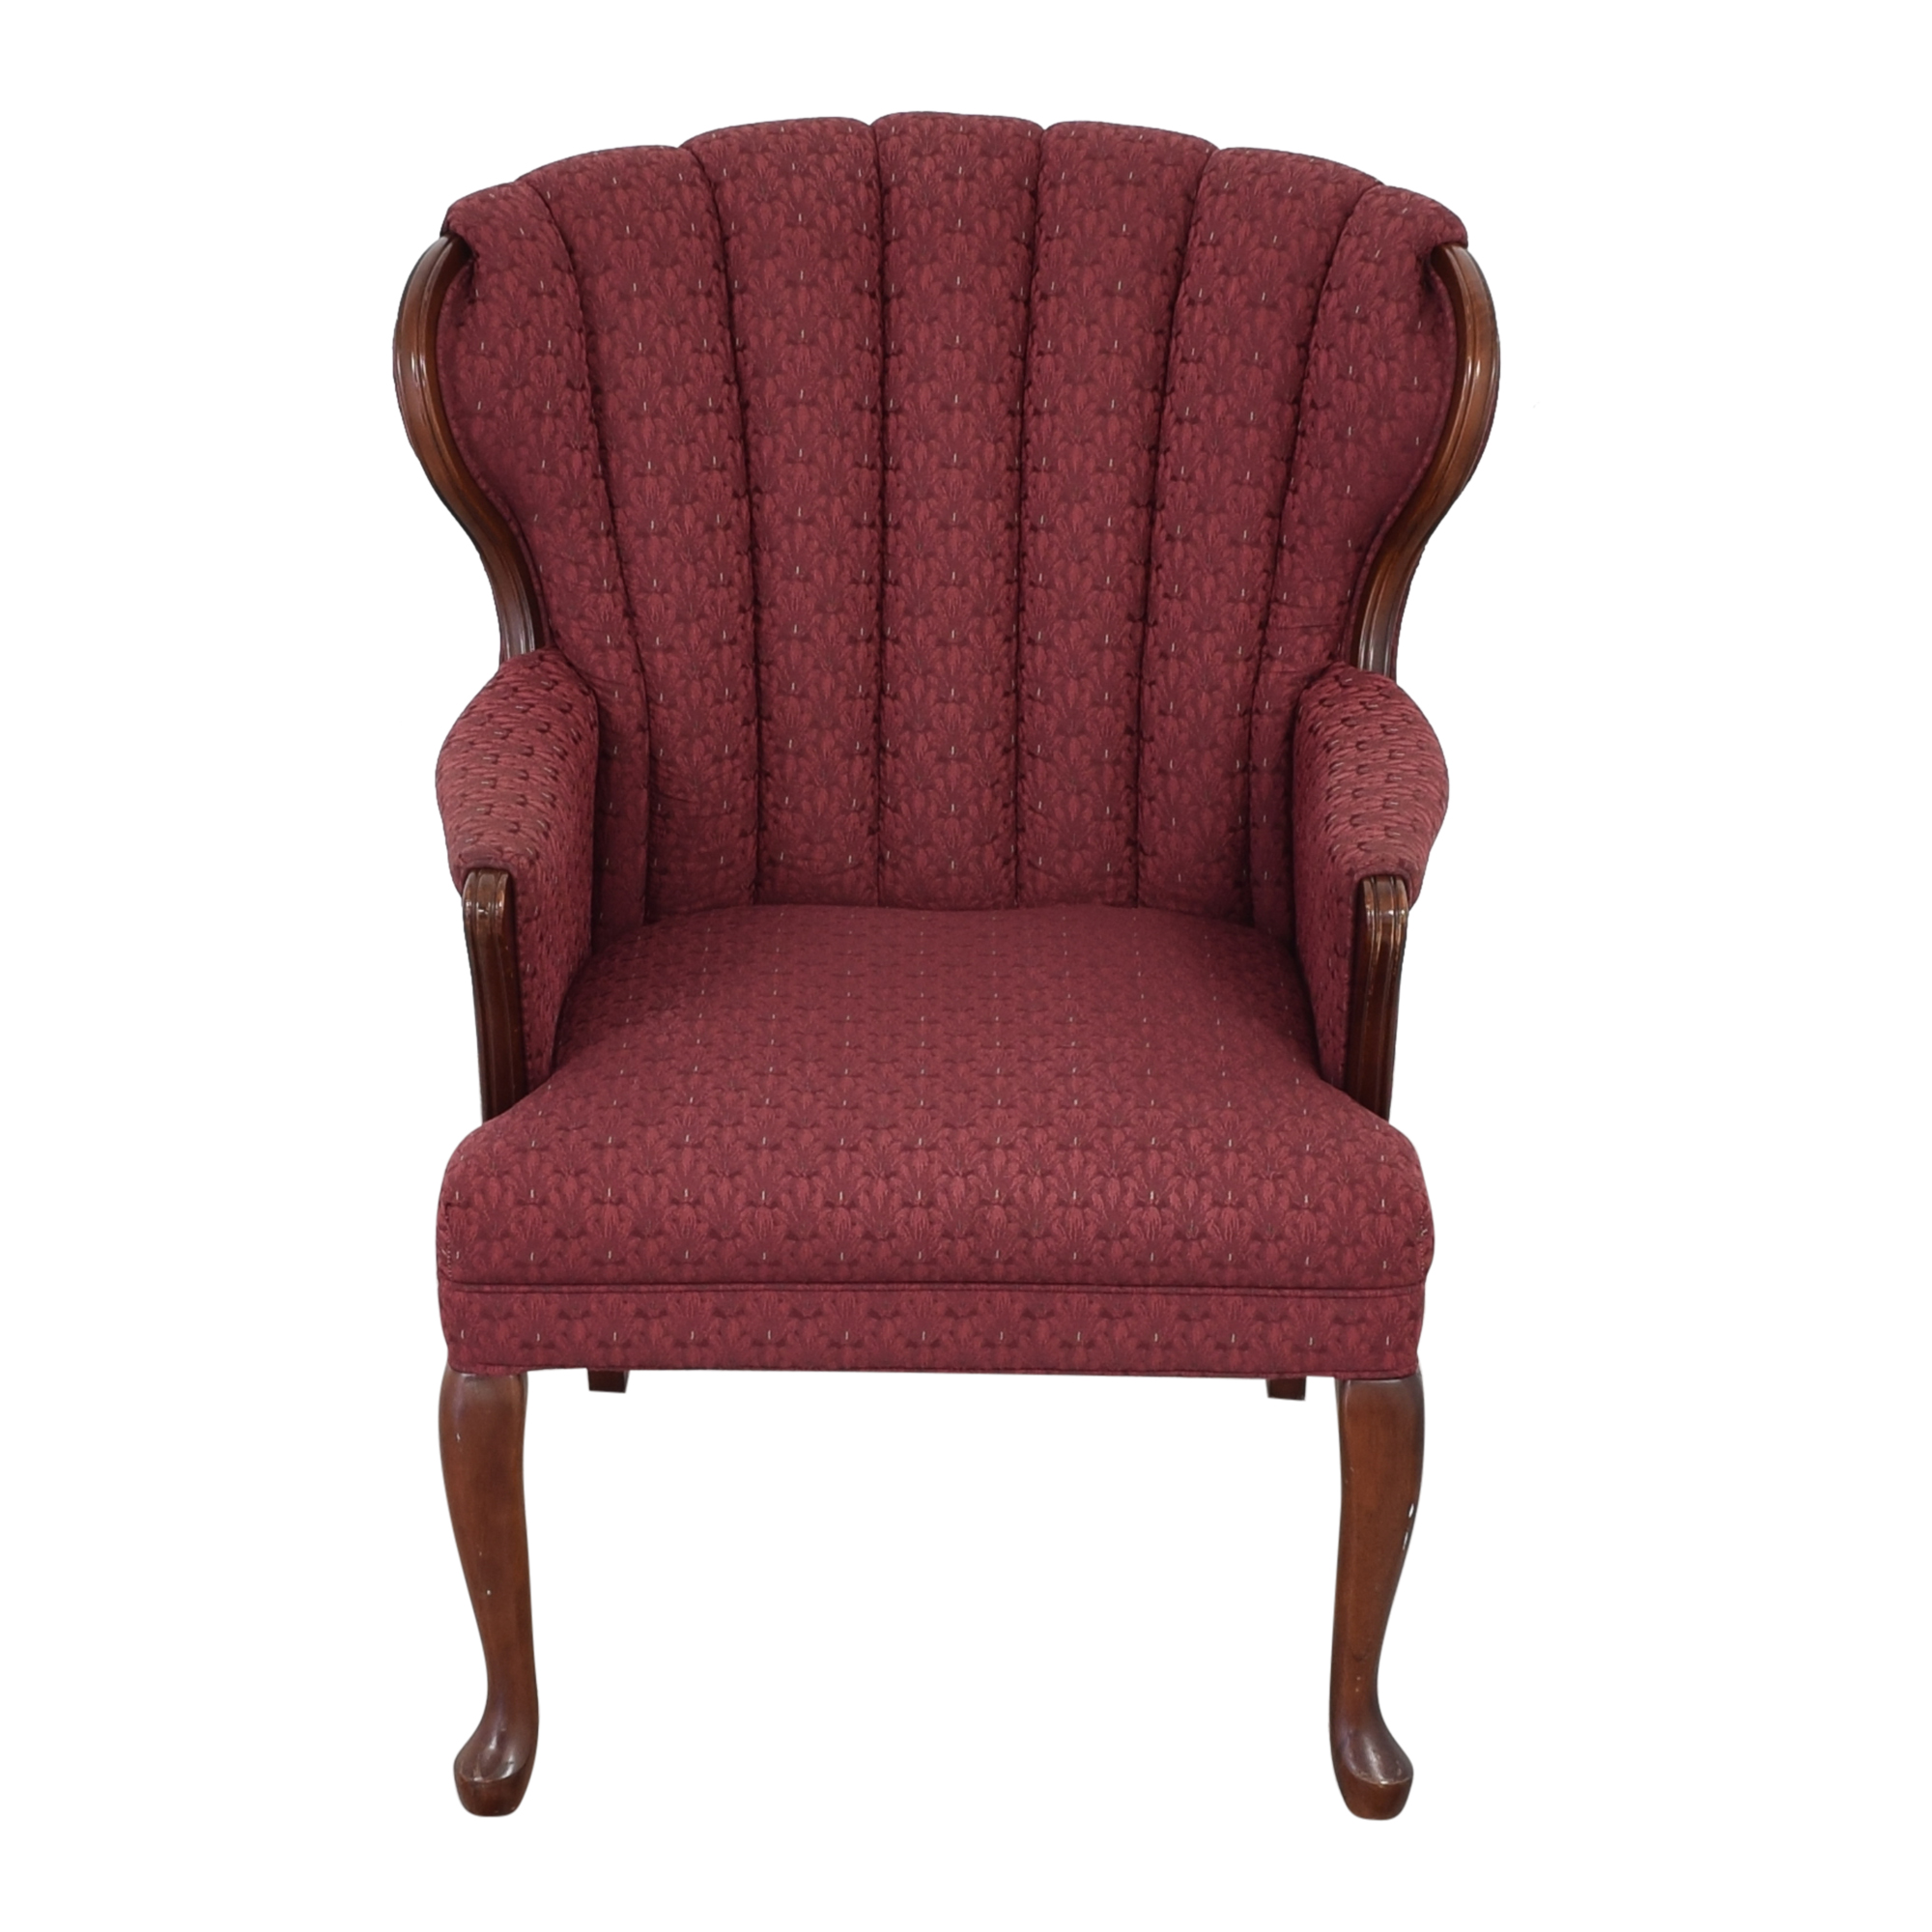 Best Chairs Best Chairs Queen Anne Scallop-Back Chair and Ottoman nj